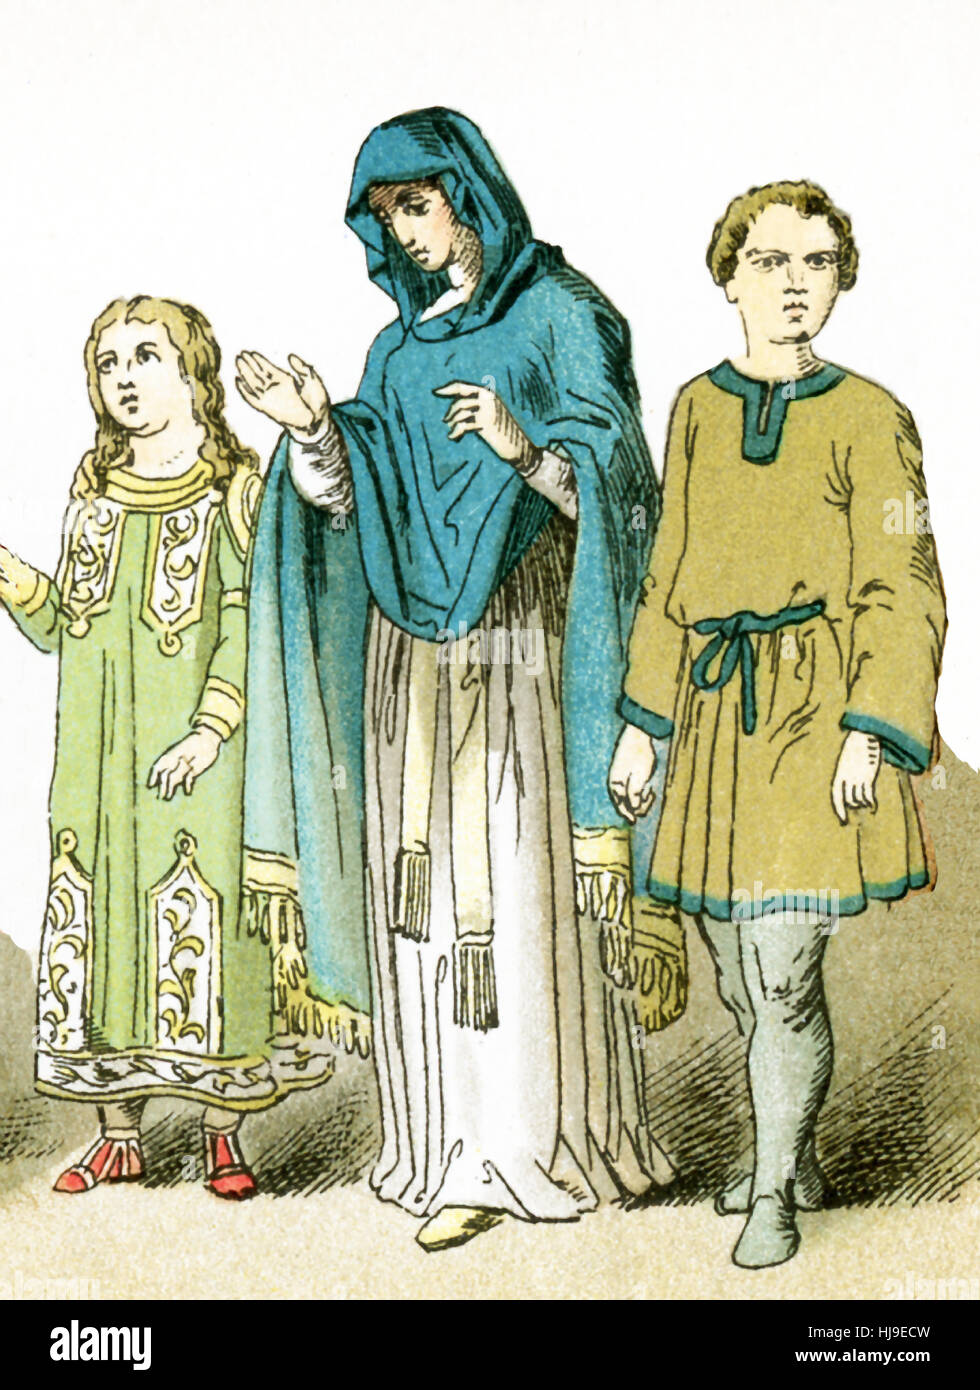 The figures represented here represent ancient Roman Christians: a woman with two children. The illustration dates - Stock Image